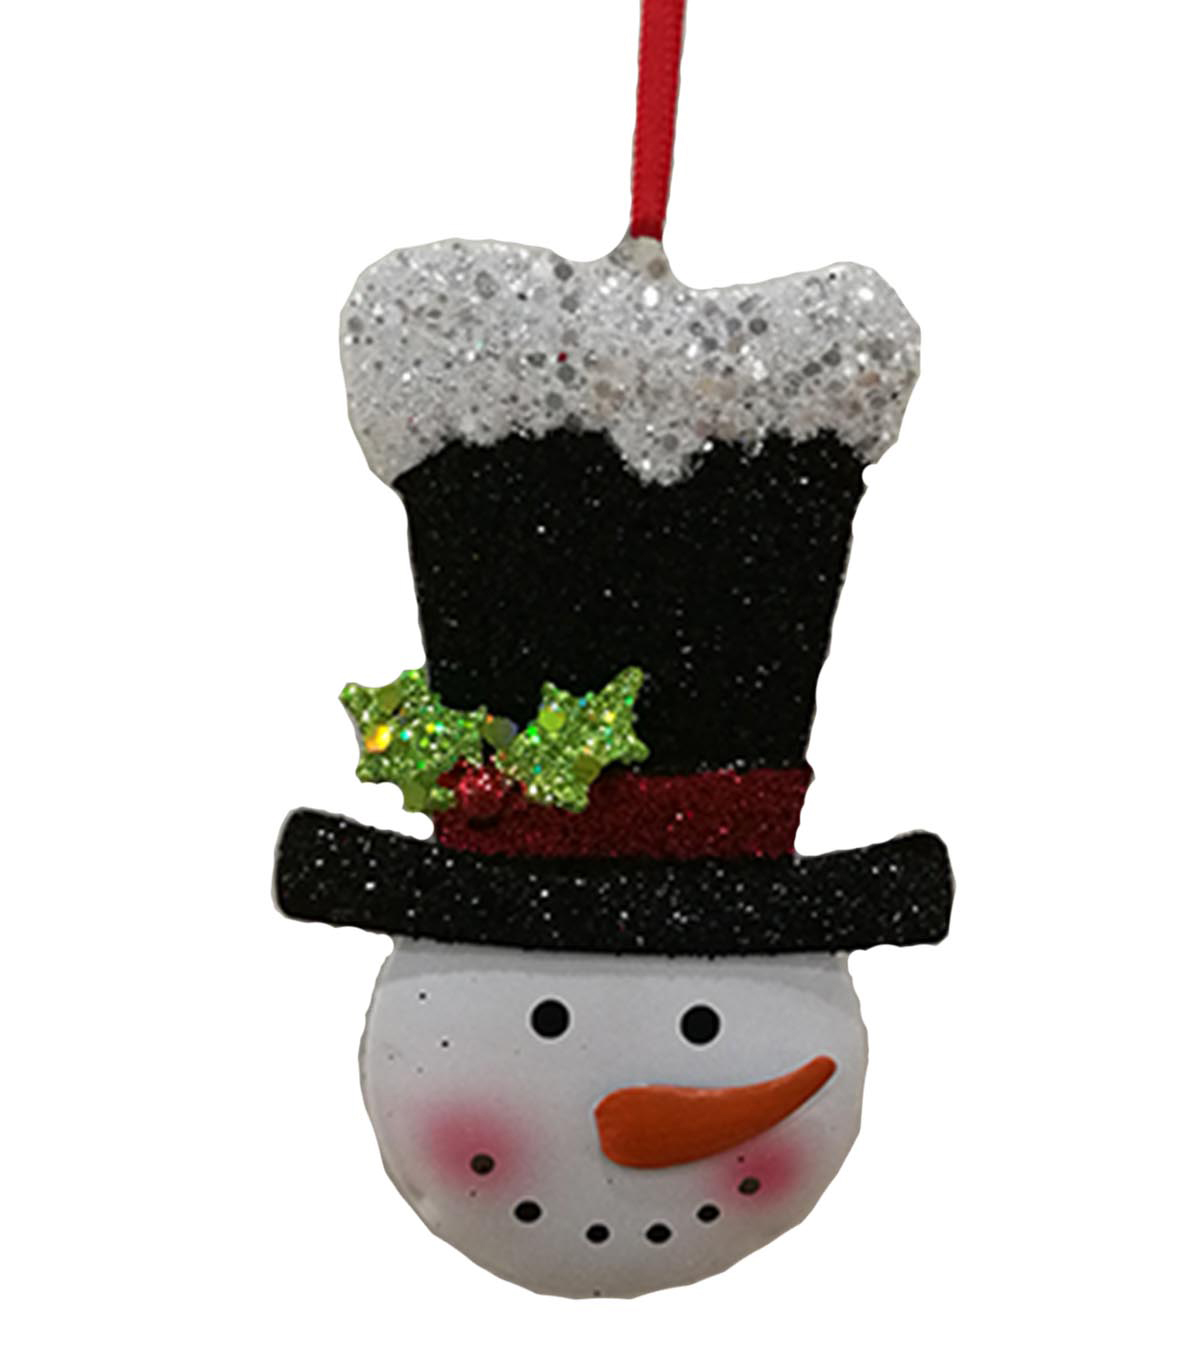 Christmas Top Hat Ornaments.Maker S Holiday Christmas Whimsy Workshop Snowman With Top Hat Ornament